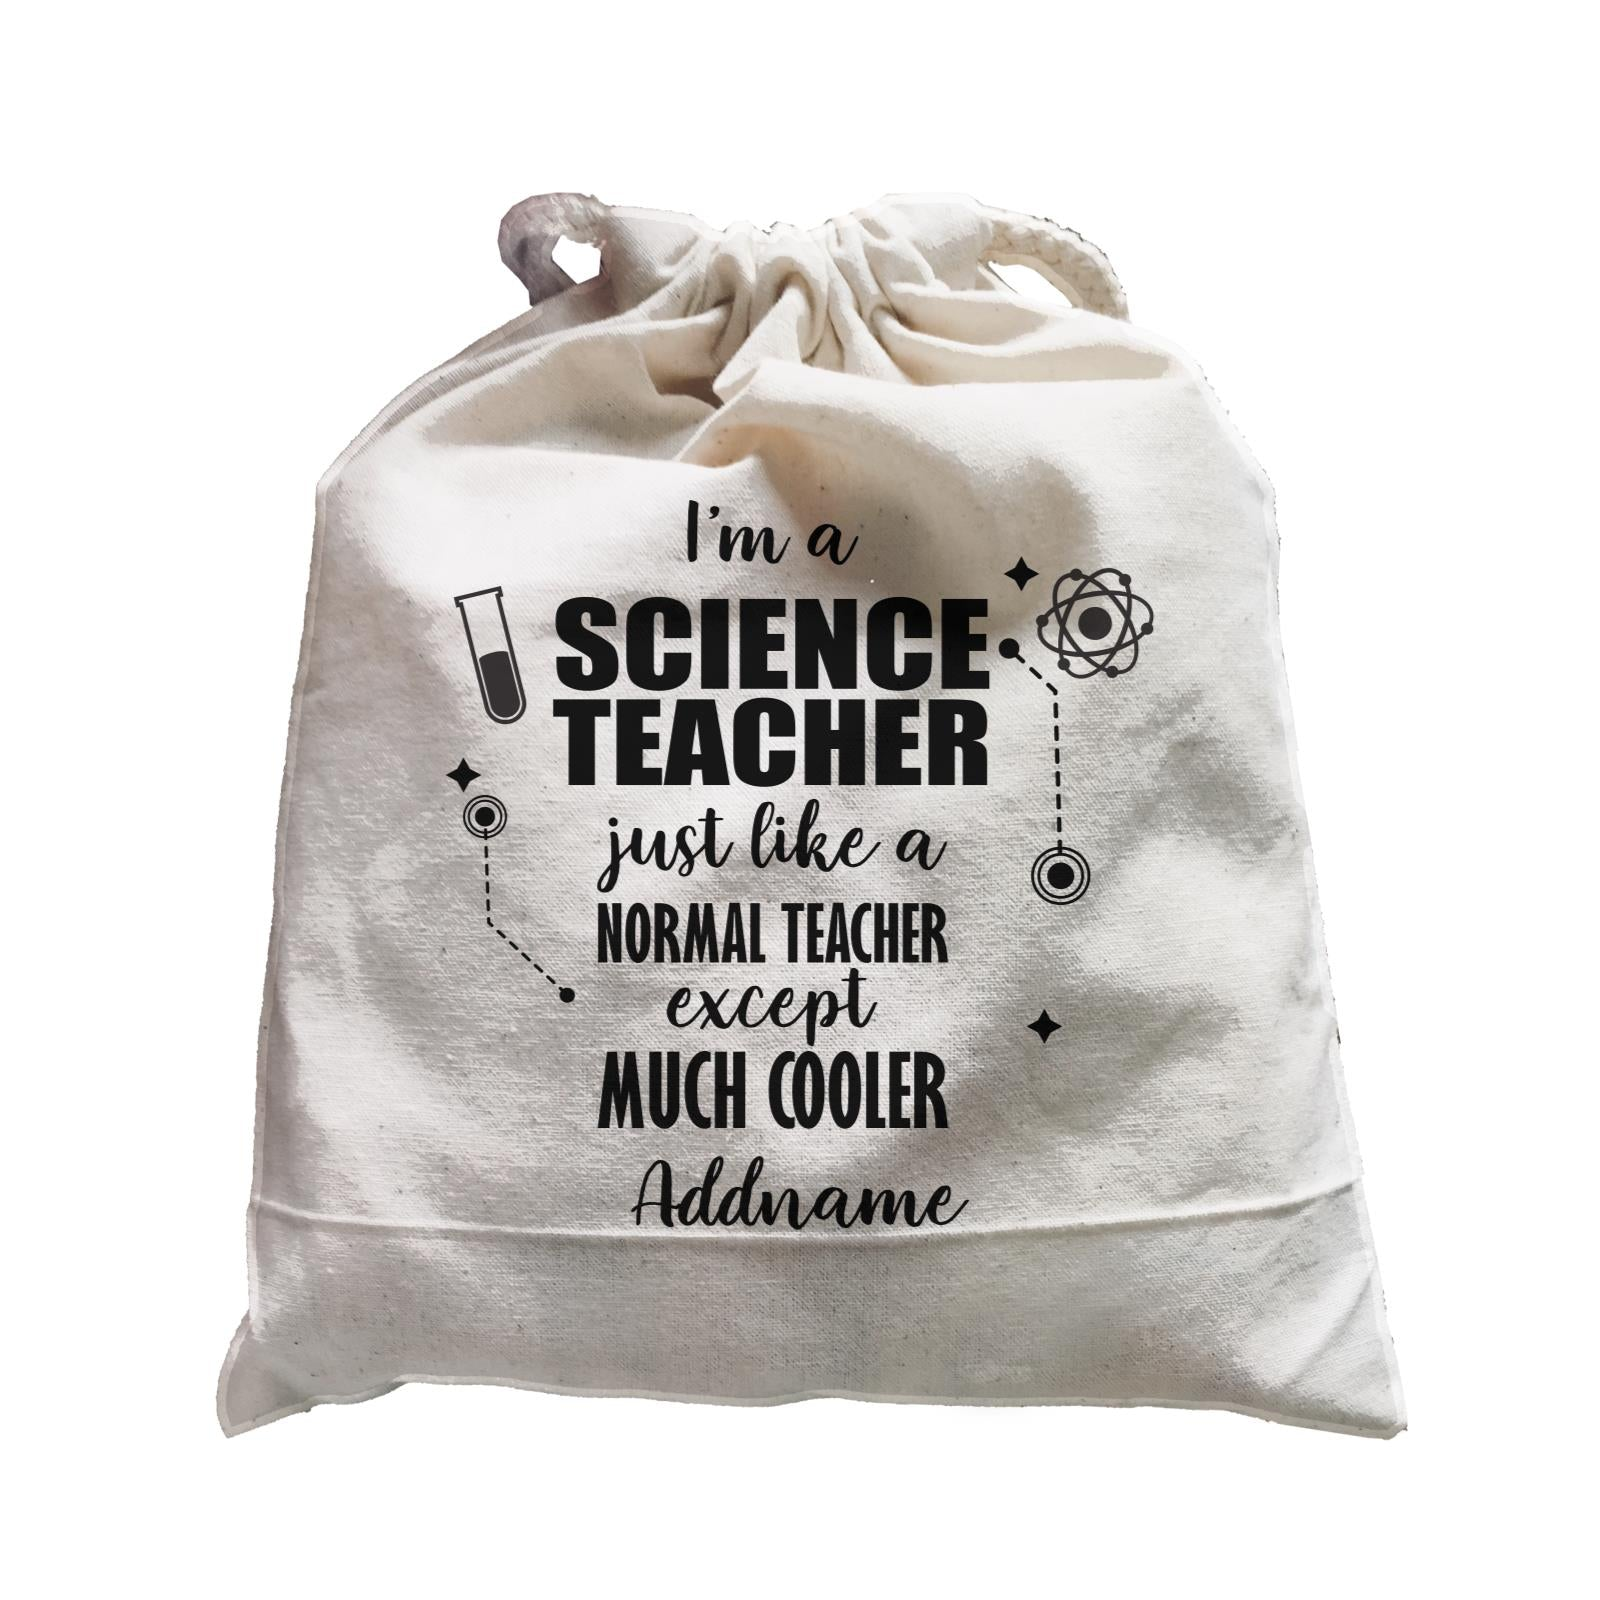 Subject Teachers 1 I'm A Science Teacher Addname Satchel